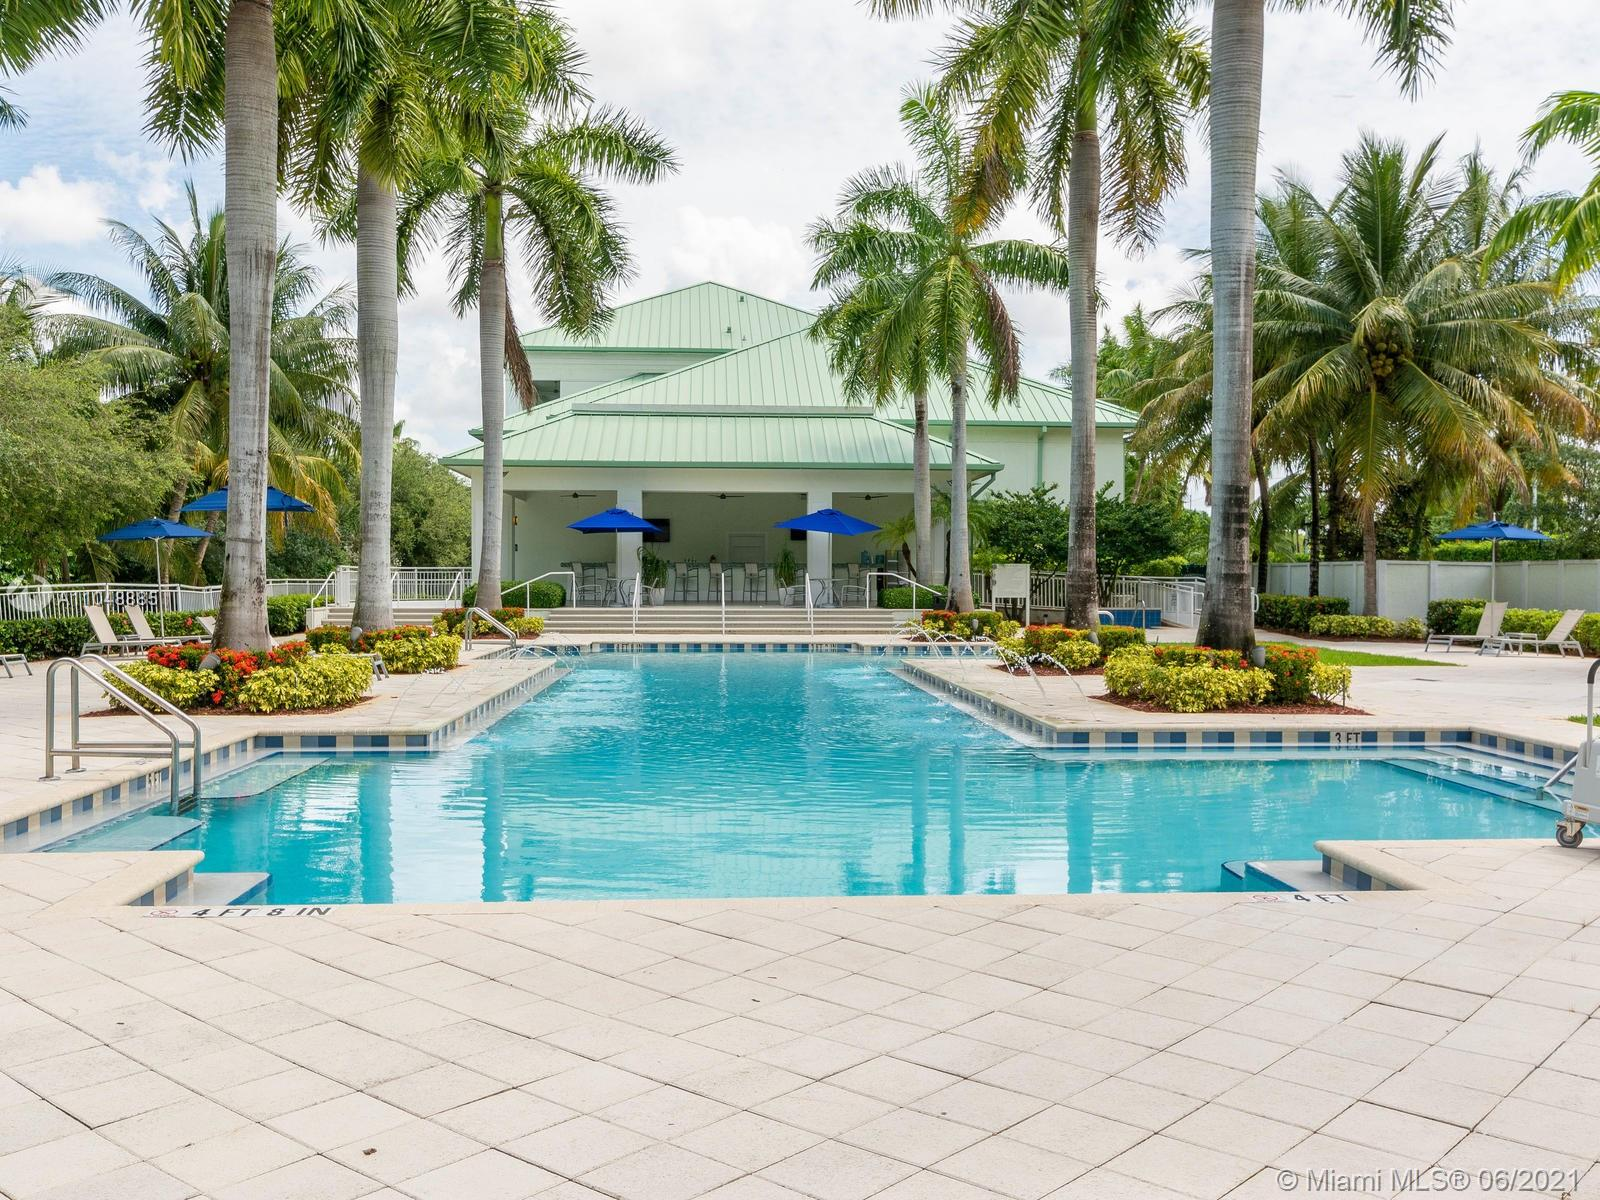 5300 NW 87th Ave Unit 913, Doral, Florida 33178